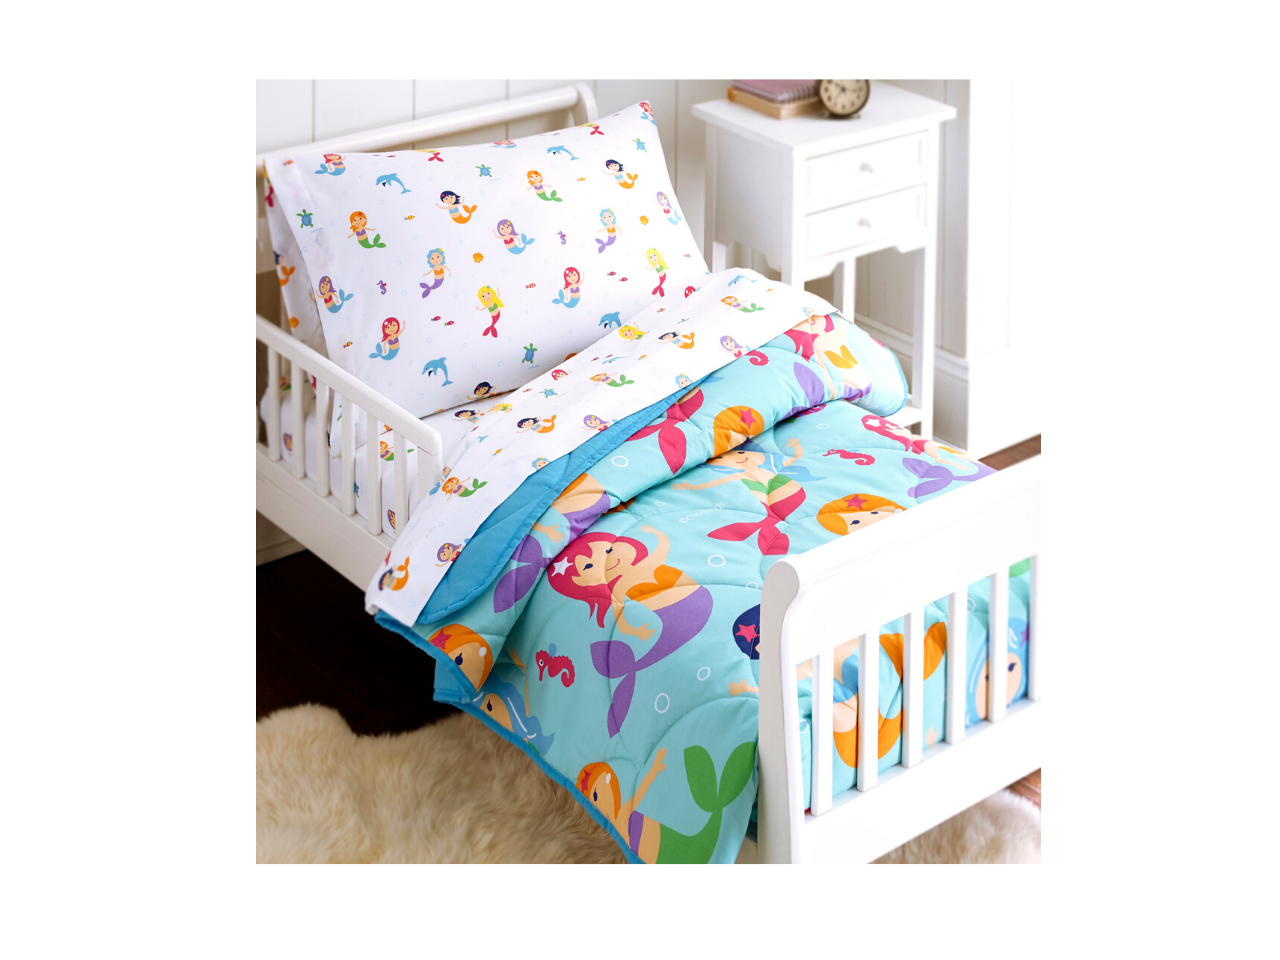 4 Piece Toddler Set - Mermaids